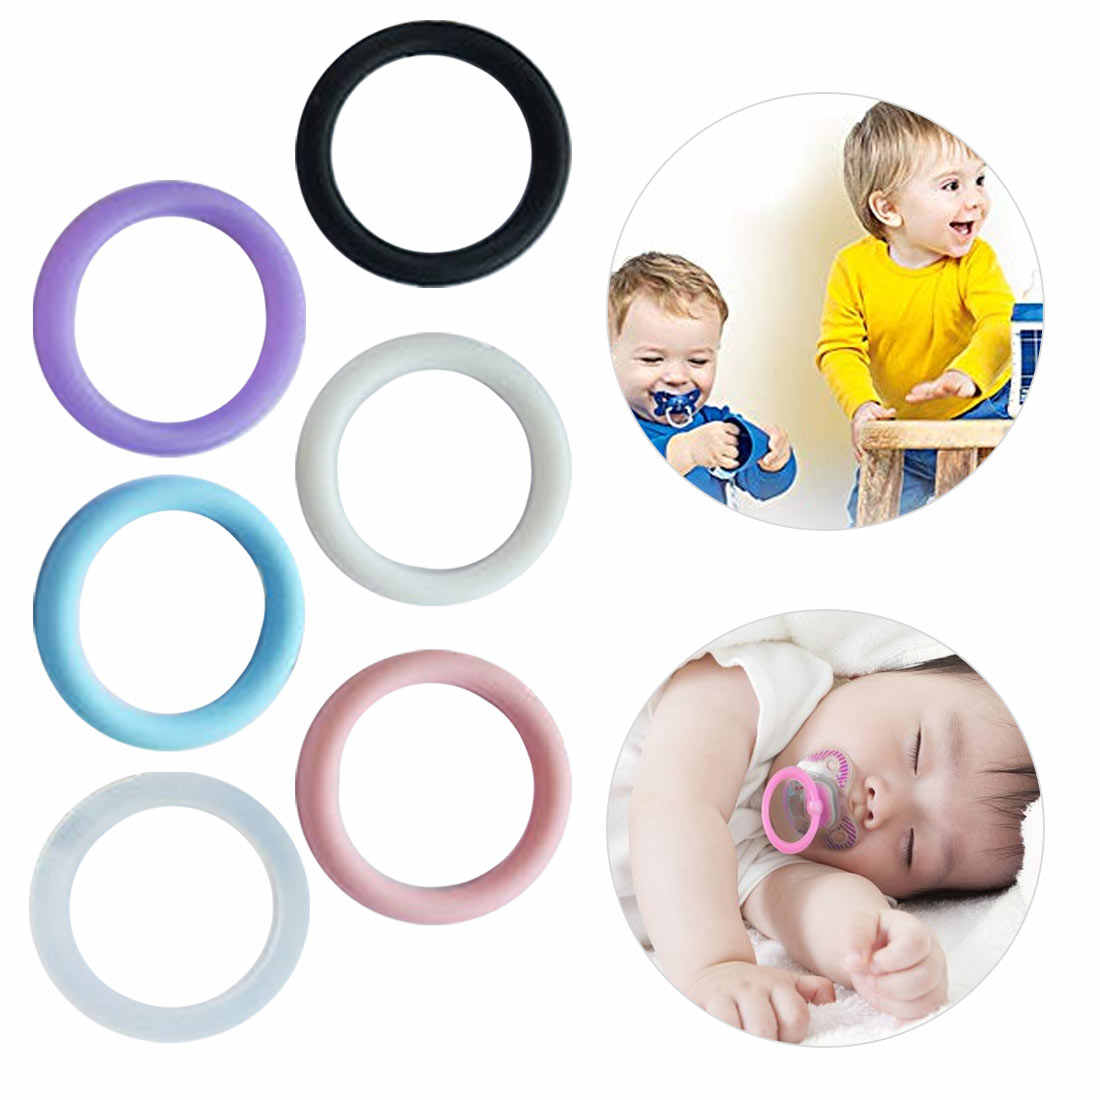 10pcs BPA Free Clear Silicone O Rings DIY Baby Dummy  Napkin Pacifier Chain Clips Adapter Holder O Rings Food Grade